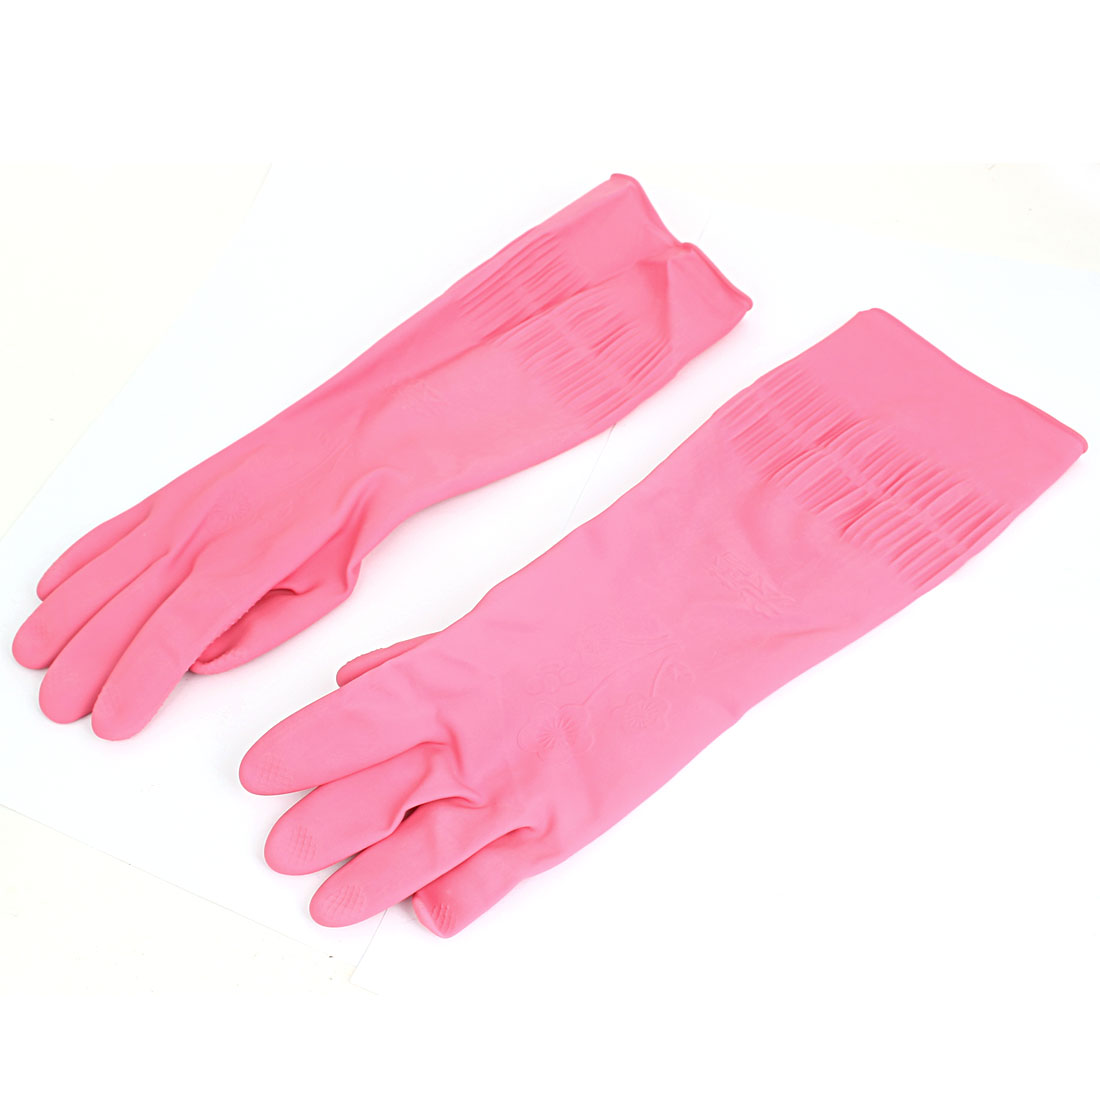 36cm x 12cm Rubber Household Kitchen Cleaning Dish Washing Gloves Fuchsia Pair